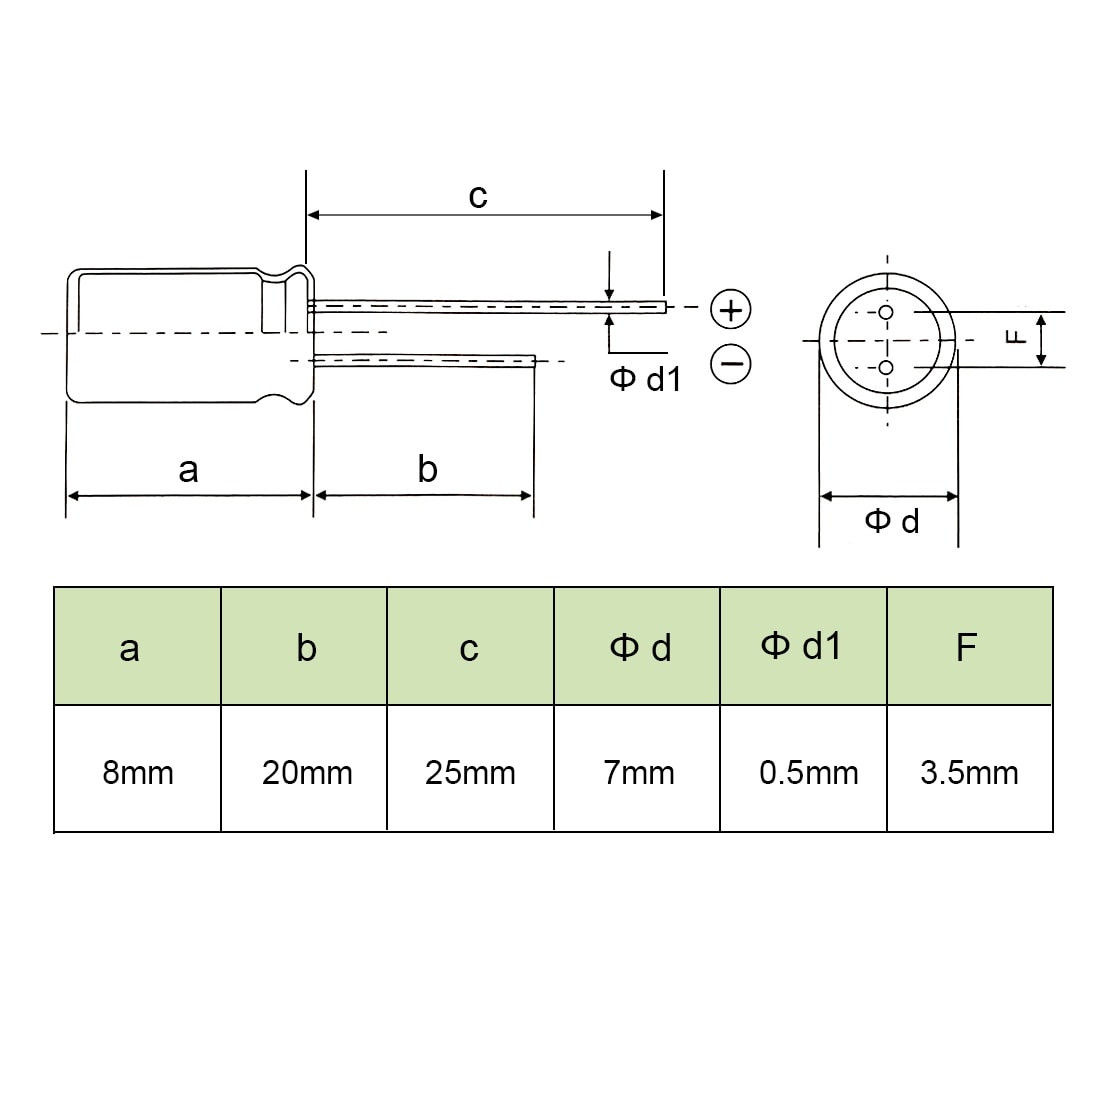 hight resolution of shop aluminum radial electrolytic capacitor low esr green 470uf 10v 8 x 7mm 20pcs 470uf 10v 8x7 20pcs on sale free shipping on orders over 45